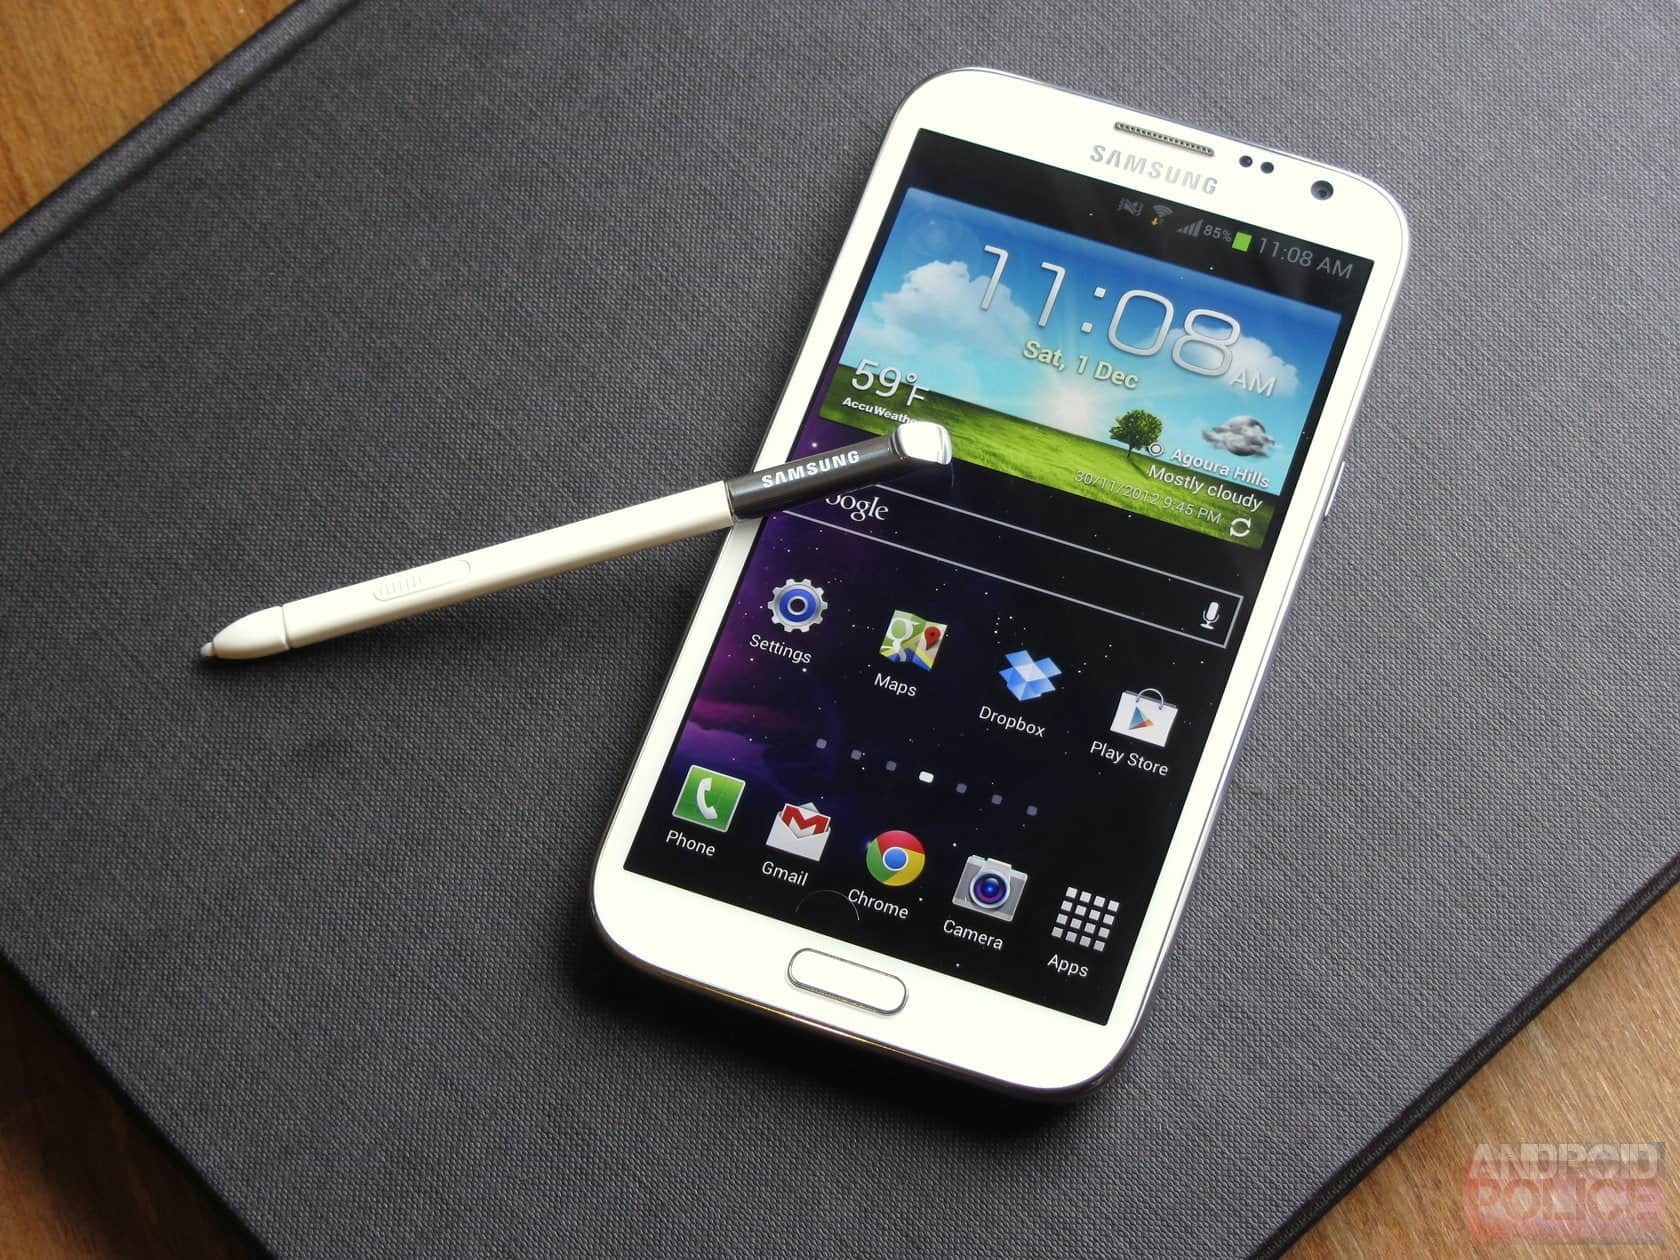 Galaxy Note 2 Android Lollipop